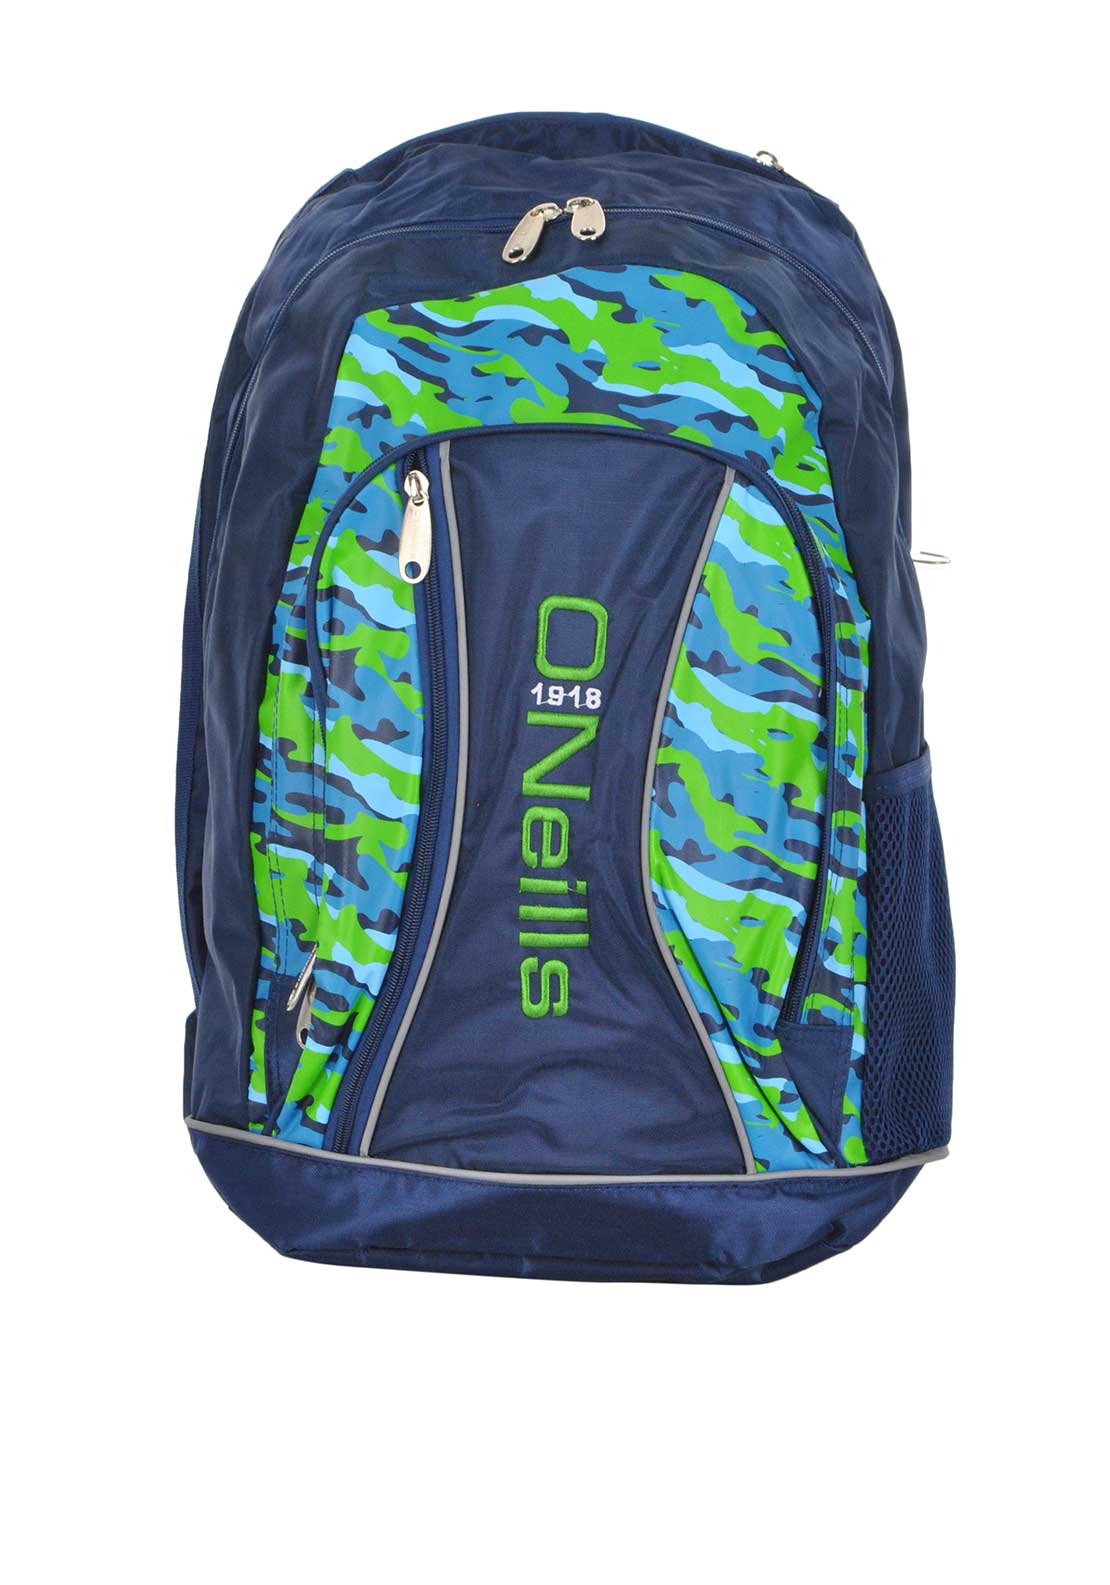 O'Neill's Camouflage Marley Back Pack School Bag, Marine